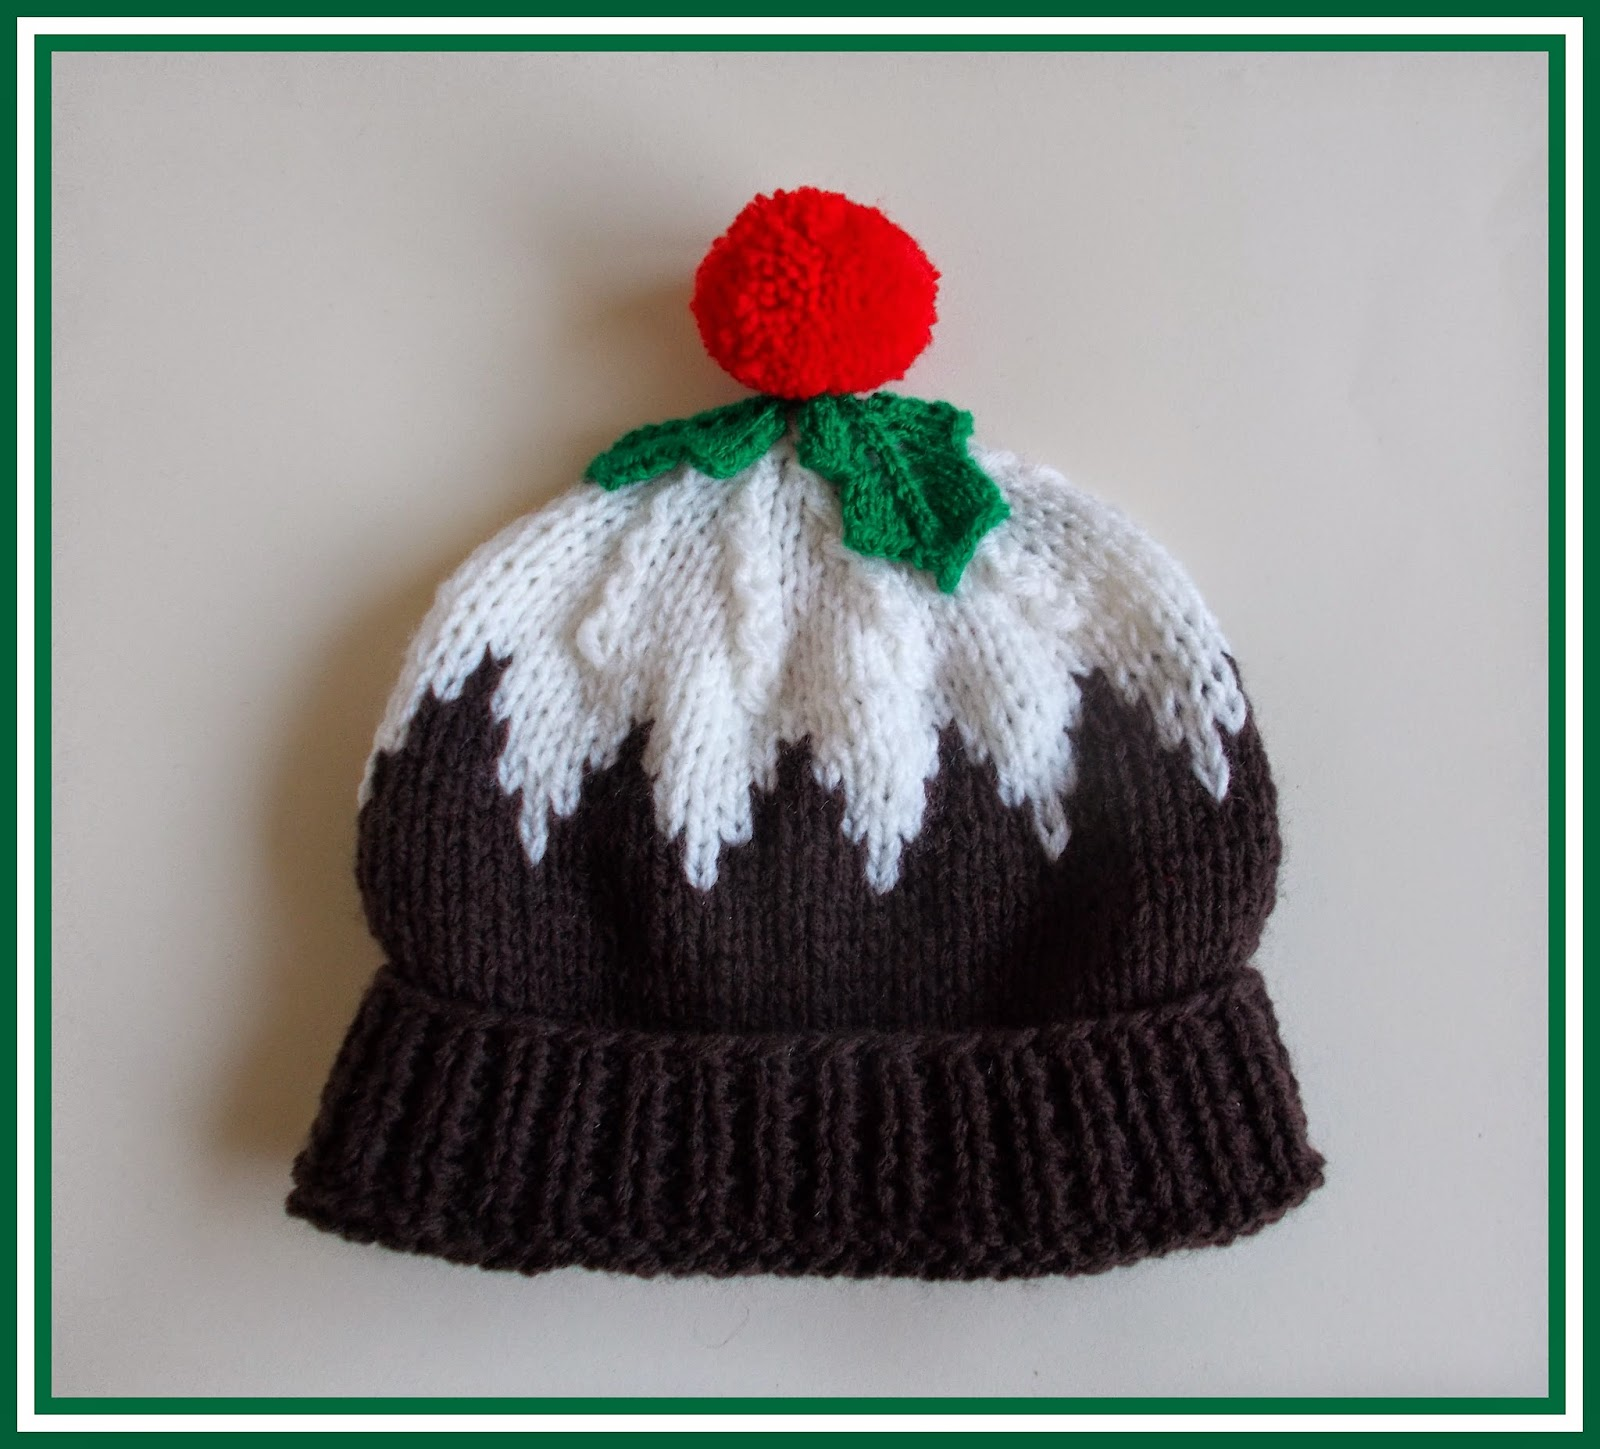 Knitting Pattern For Christmas Pudding : mariannas lazy daisy days: Christmas Pudding Hat